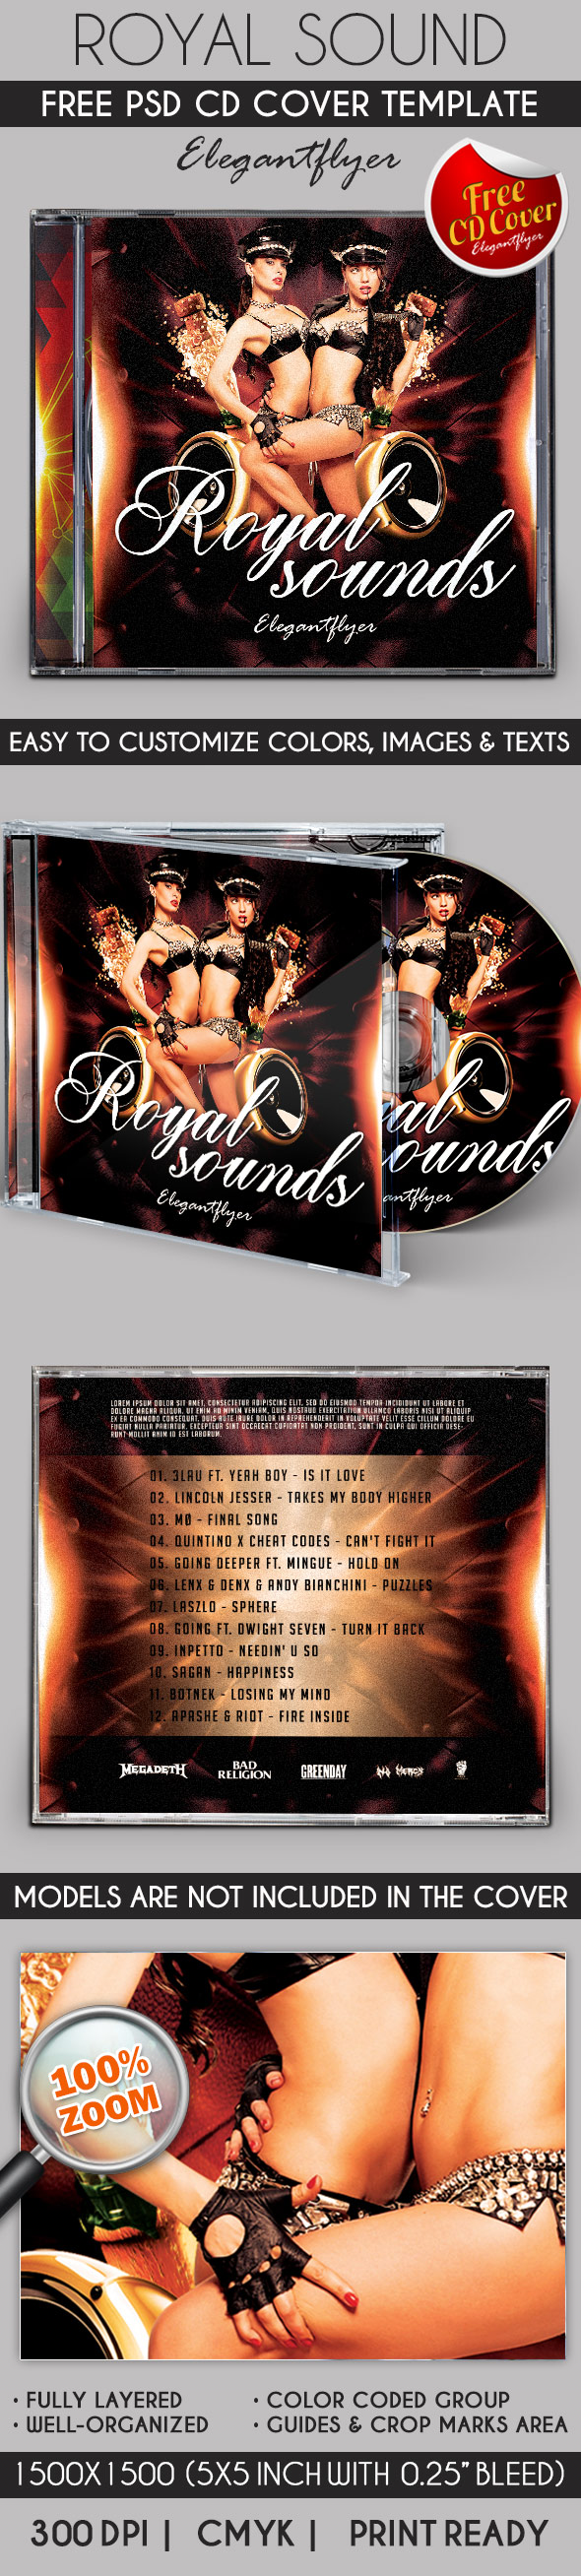 Royal Sound – Free CD Cover PSD Template